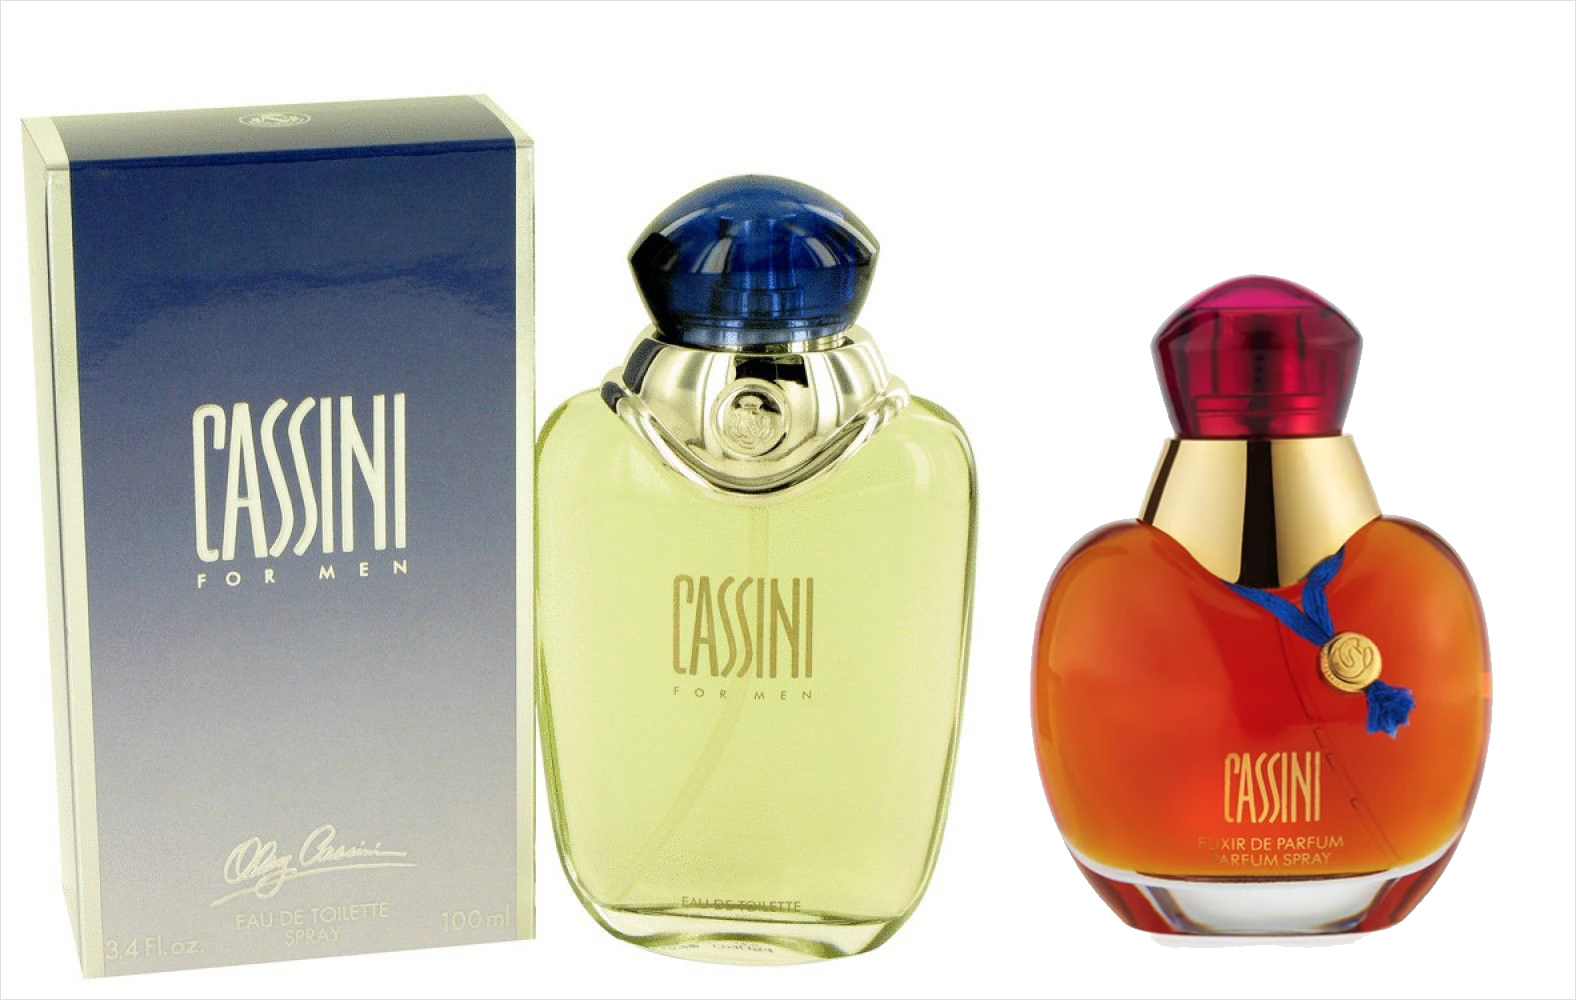 Oleg Cassini mens and womens fragrance gift ideas